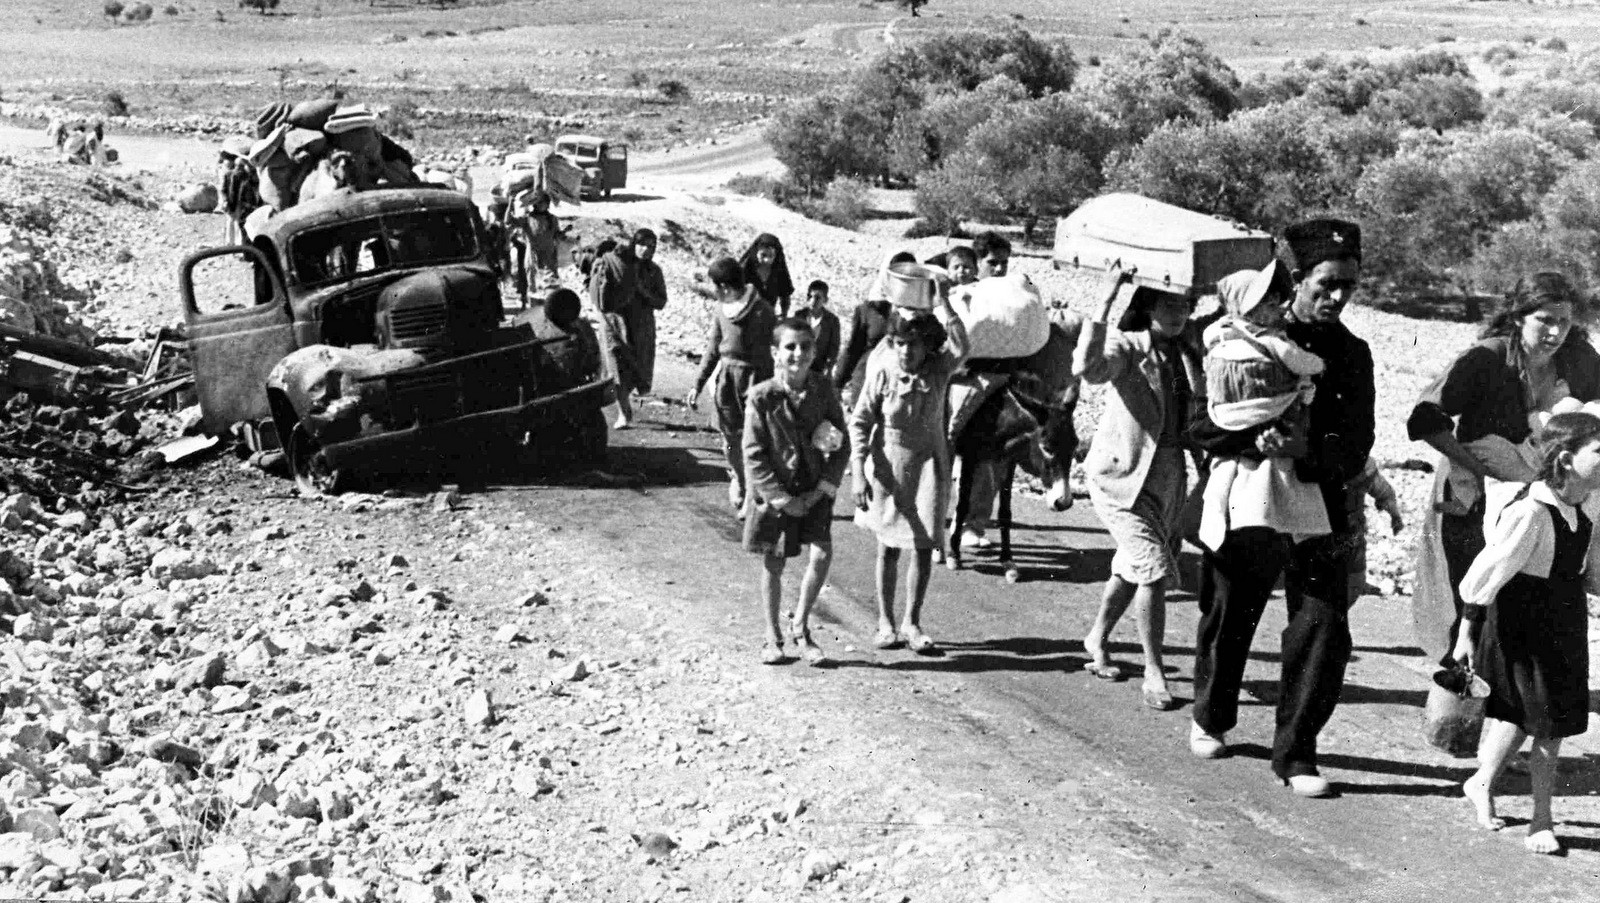 A group of struggling Arab refugees walk along the dusty road from Jerusalem to Lebanon, carrying their meager belongings with them, Nov. 9, 1948. The Arabs have been driven from their homes by Jewish attacks in Galilee. (AP/Pringle)